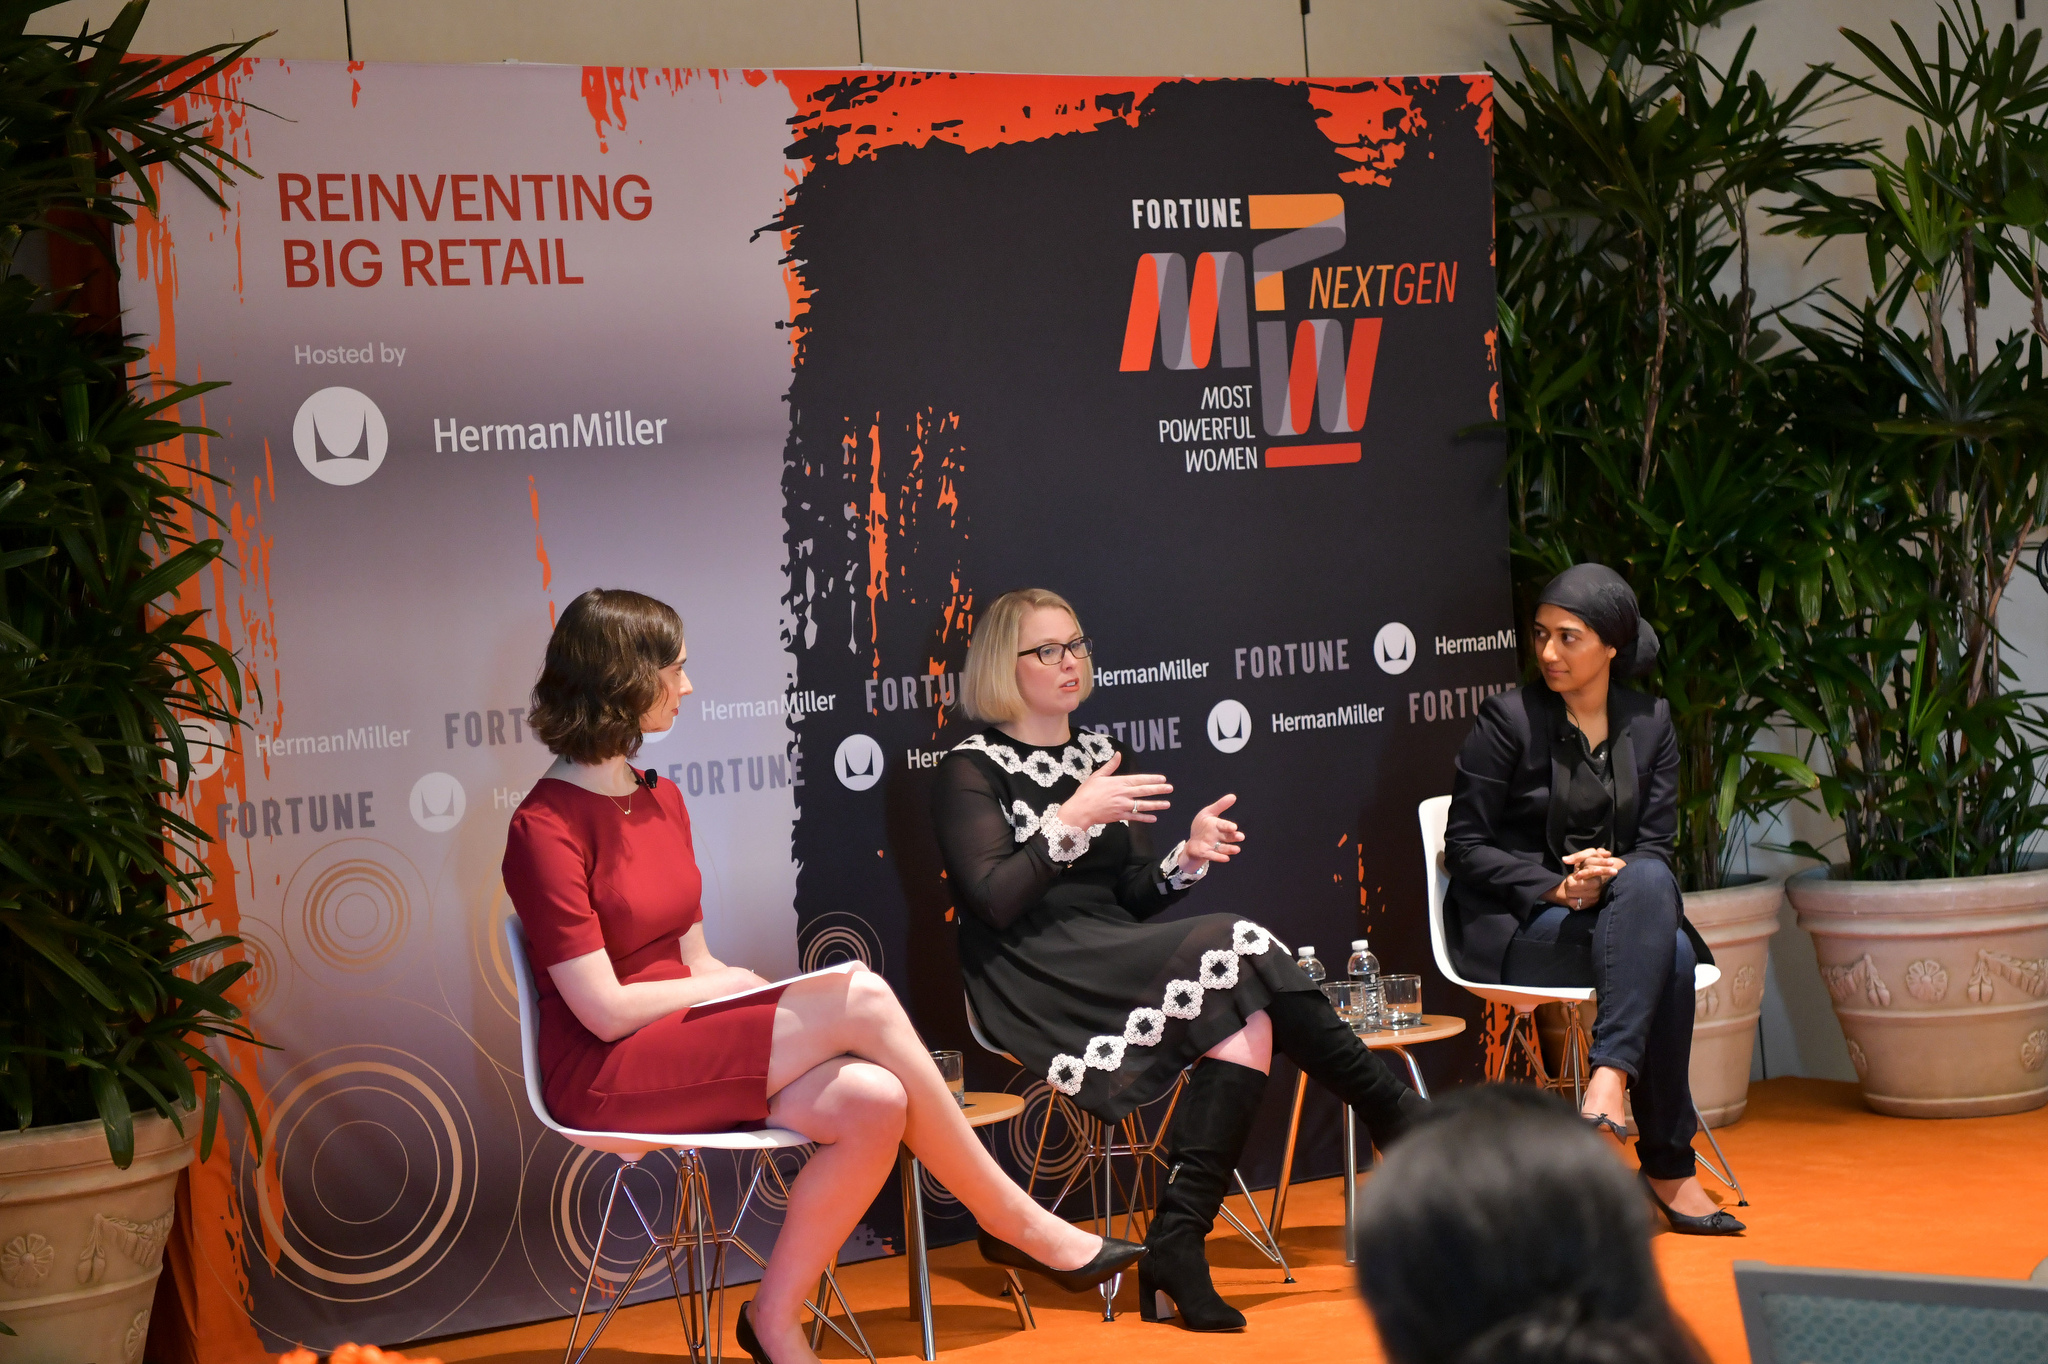 Senior writer Beth Kowitt (left) speaks with Krystal Zell, Vice President, Customer, Home Depot (middle) and Sumaiya Balbale, Vice President, E-commerce, Mobile and Digital Marketing, Walmart U.S. (right) at Fortune's MPW Next Gen Summit in Laguna Niguel, Calif.